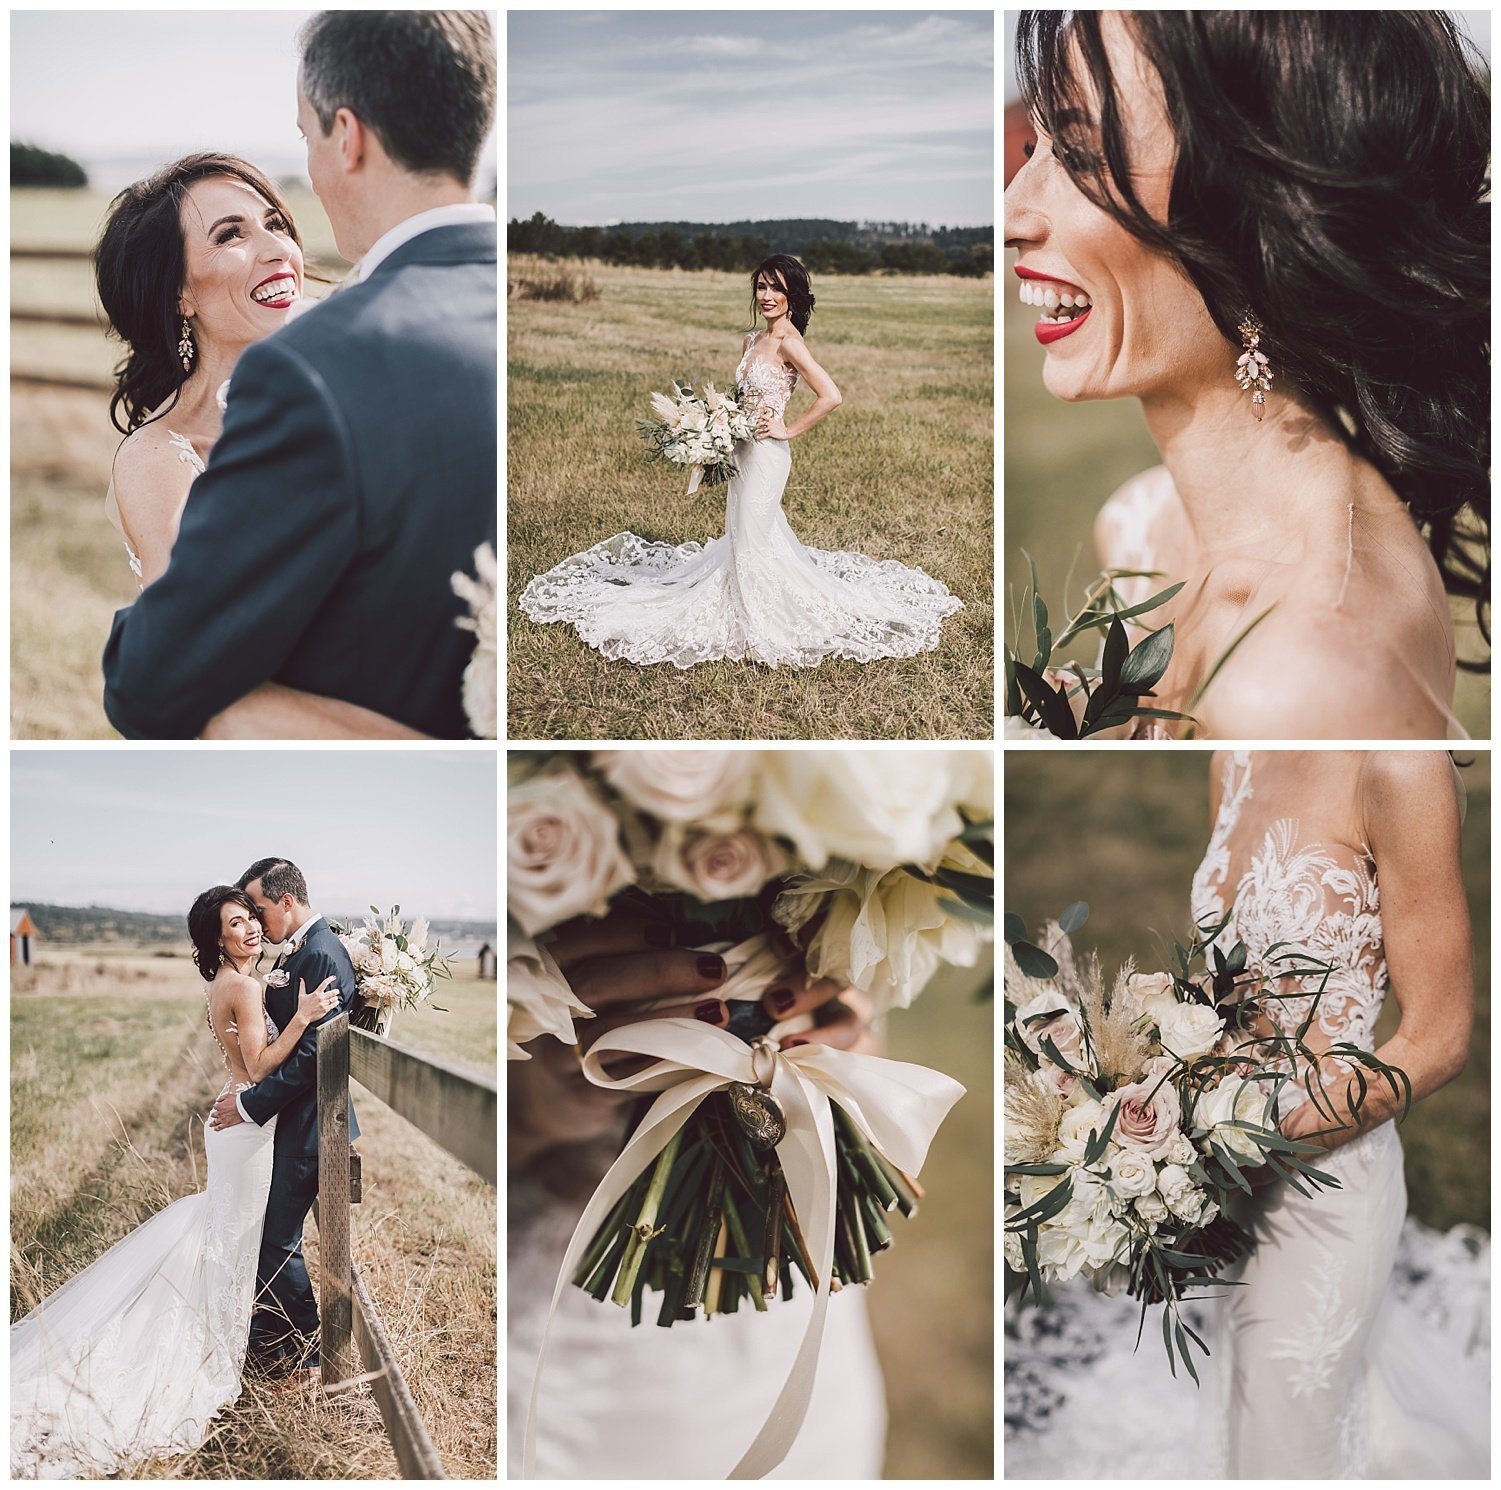 crockett-farm-wedding-whidbey-island-luma-weddings_0015